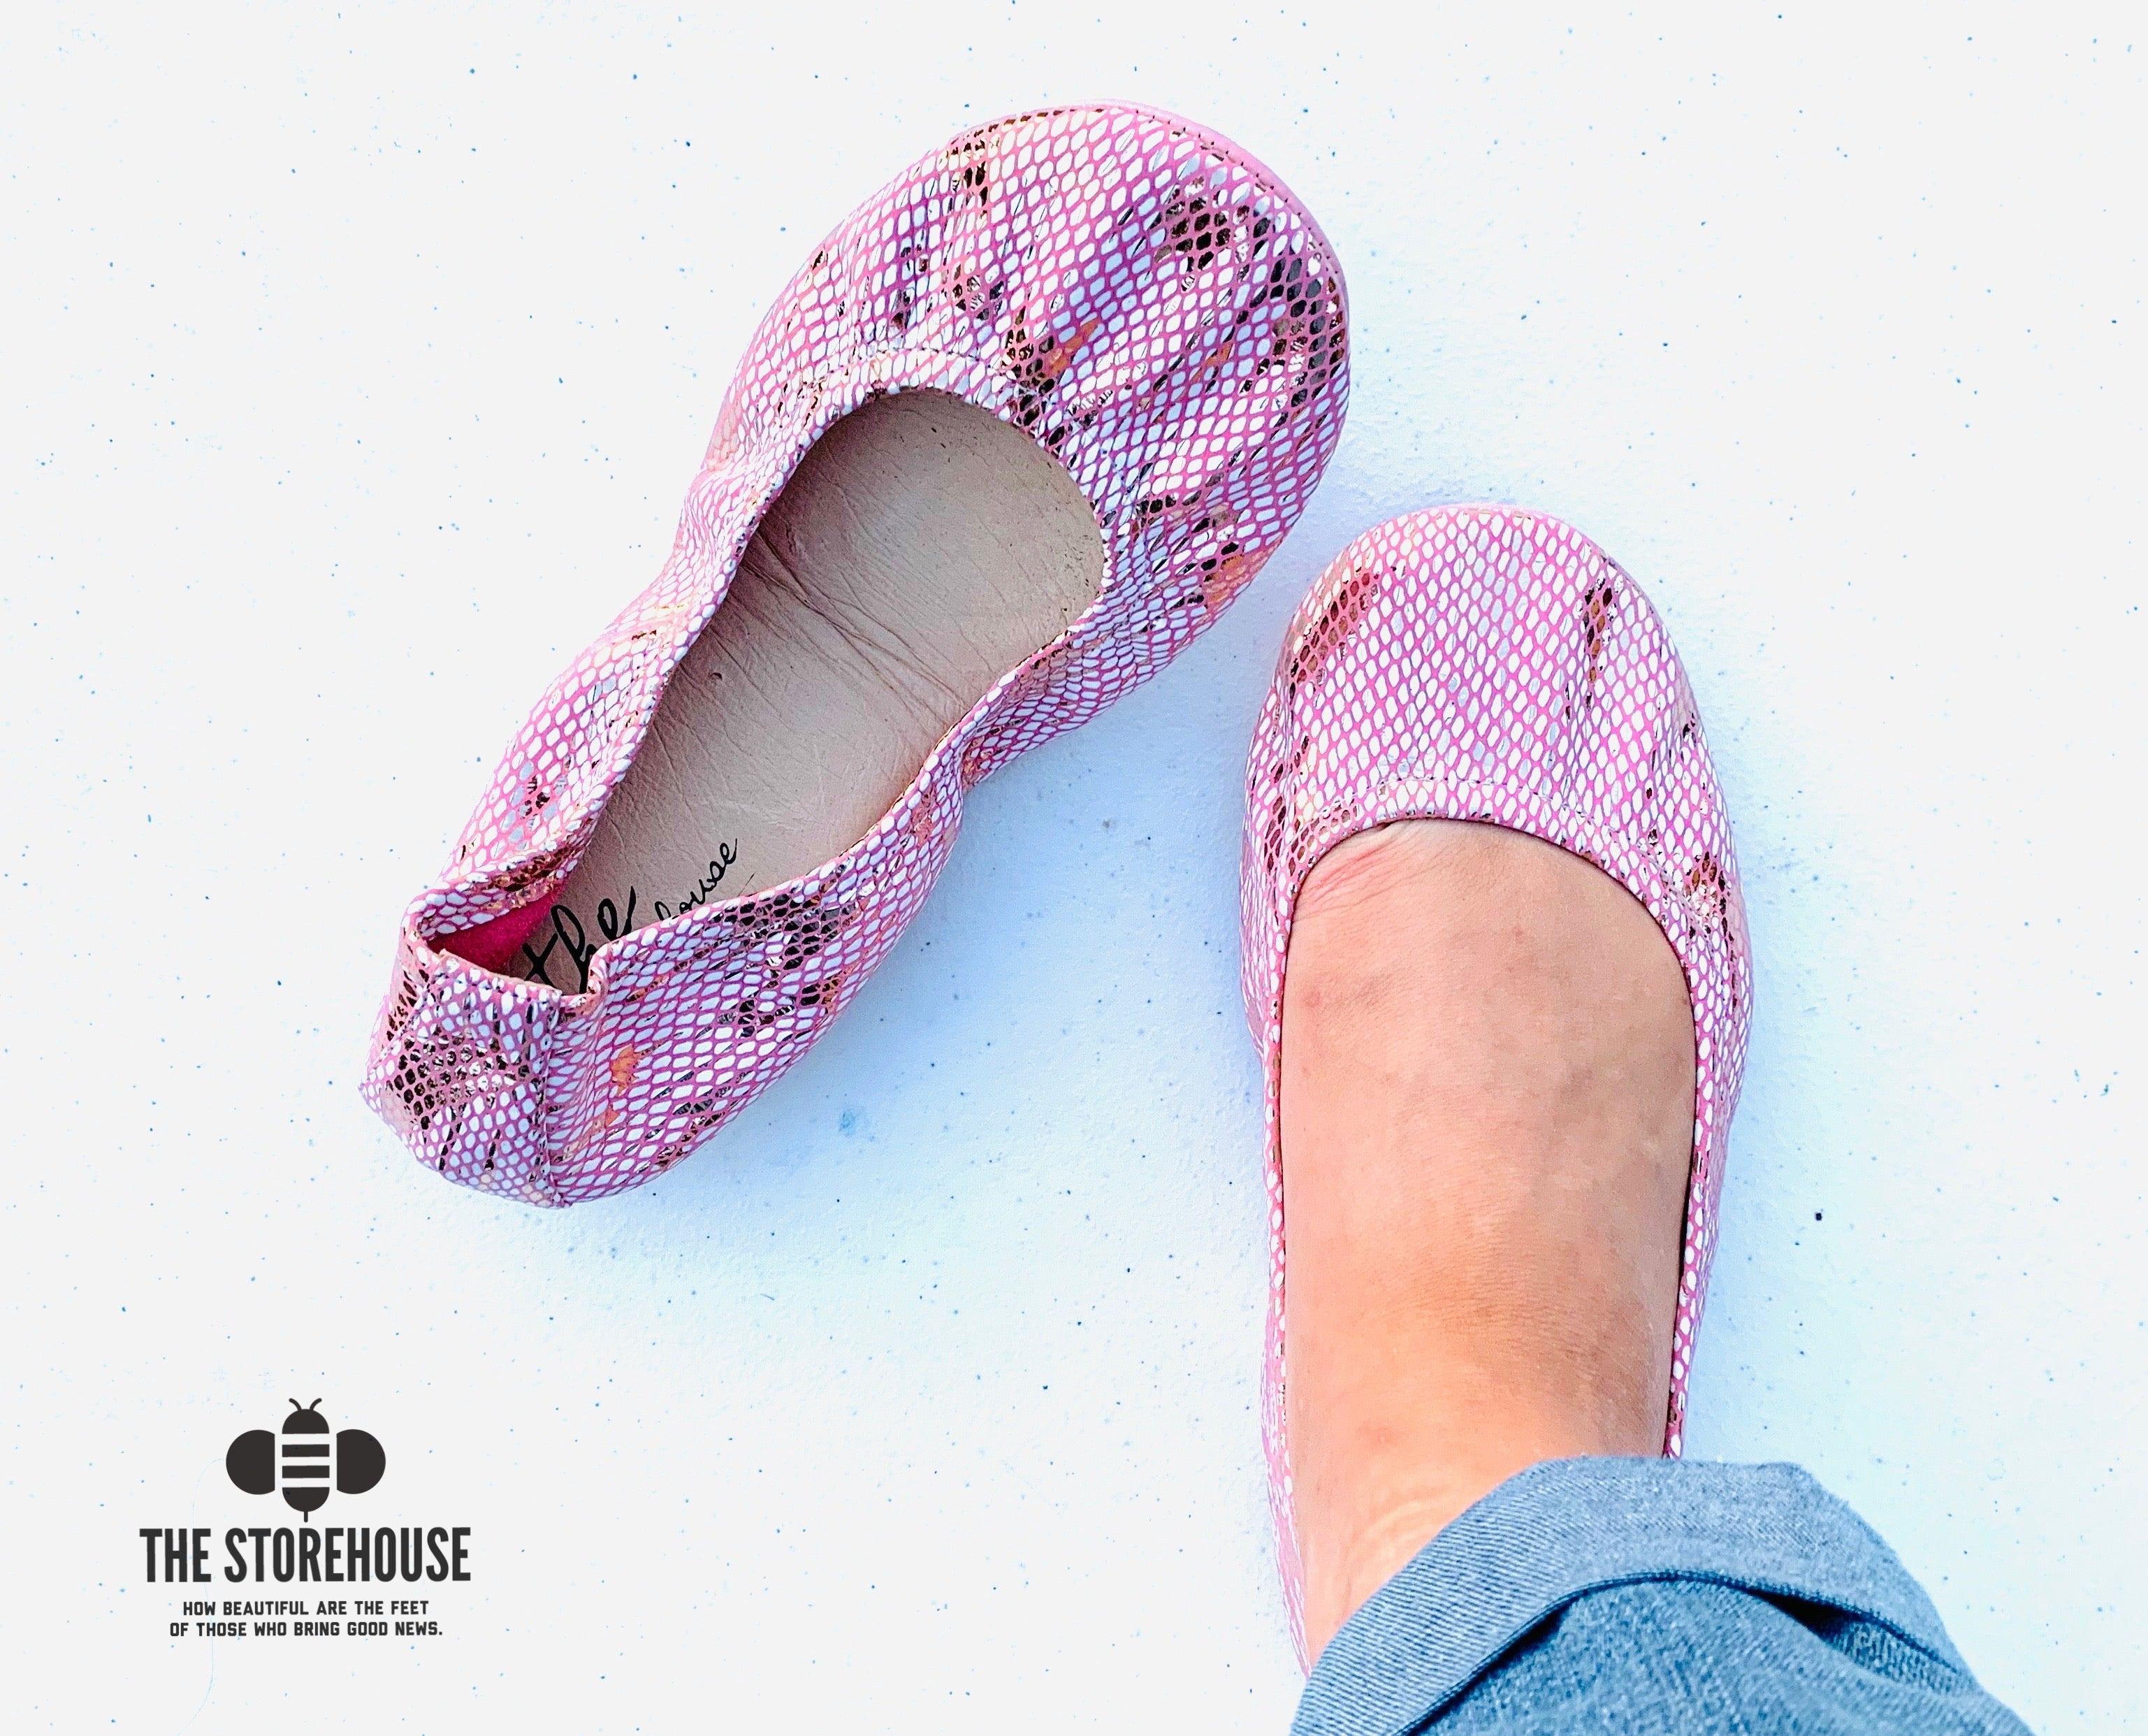 COTTON CANDY SNAKES | IN STOCK - The Storehouse Flats